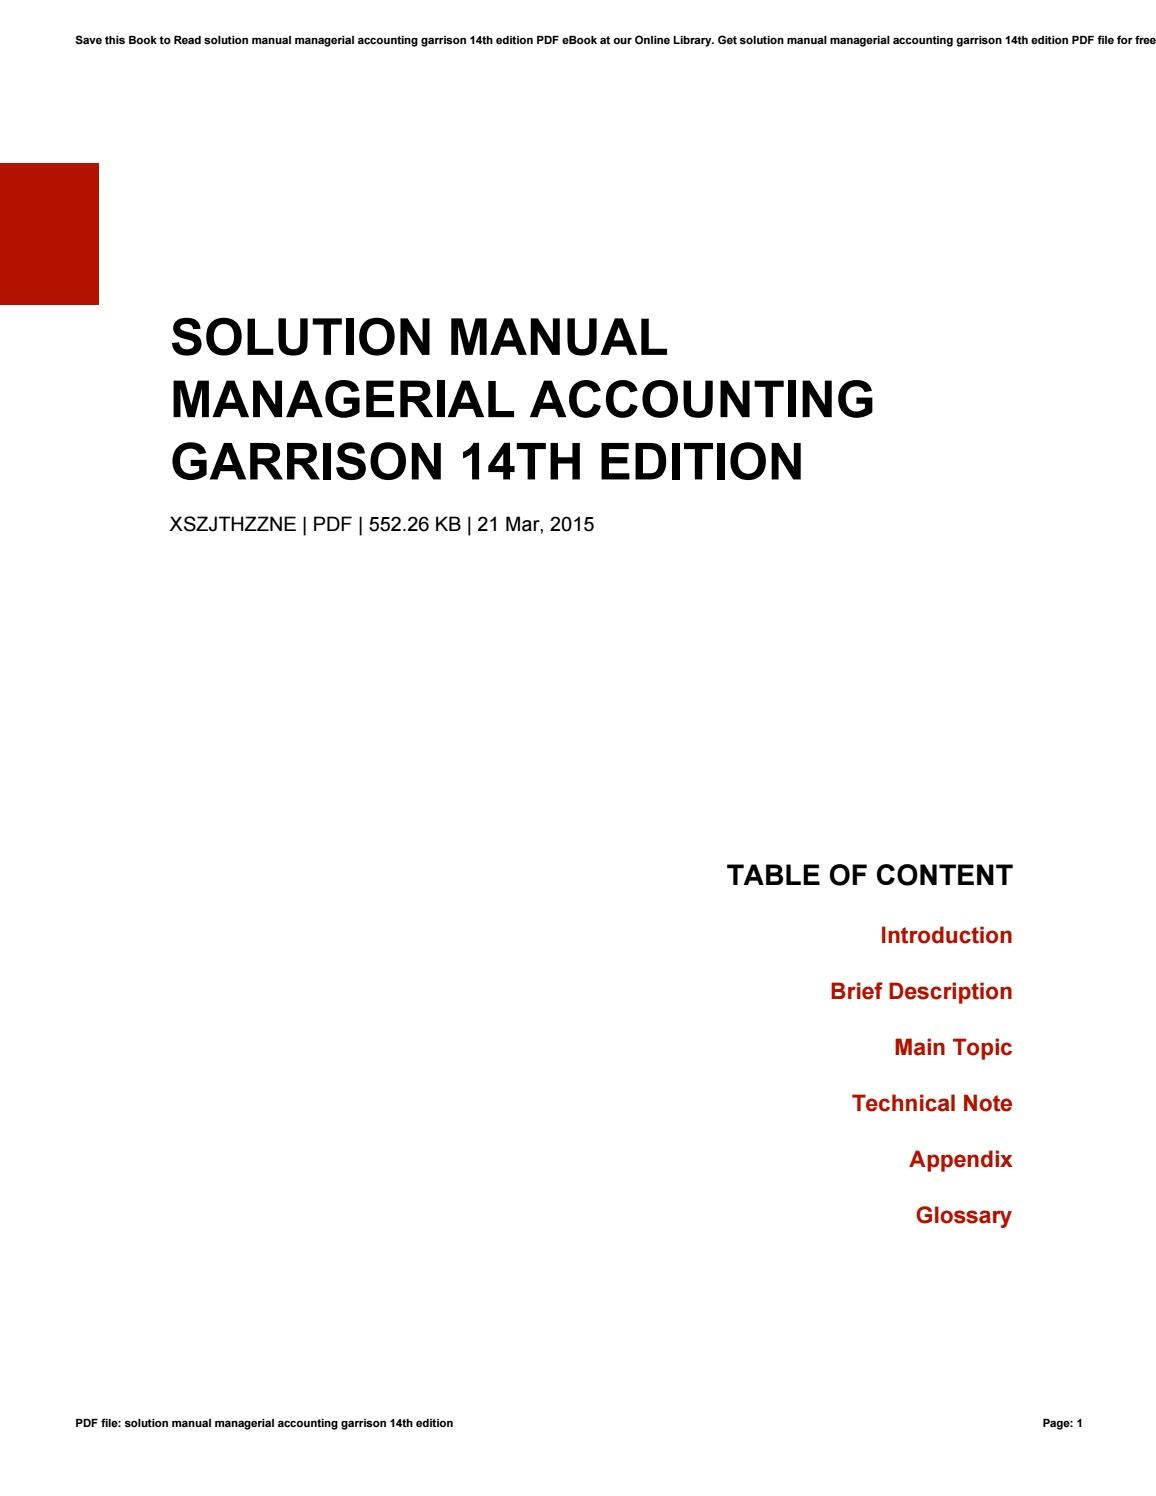 Solution manual managerial accounting garrison 14th